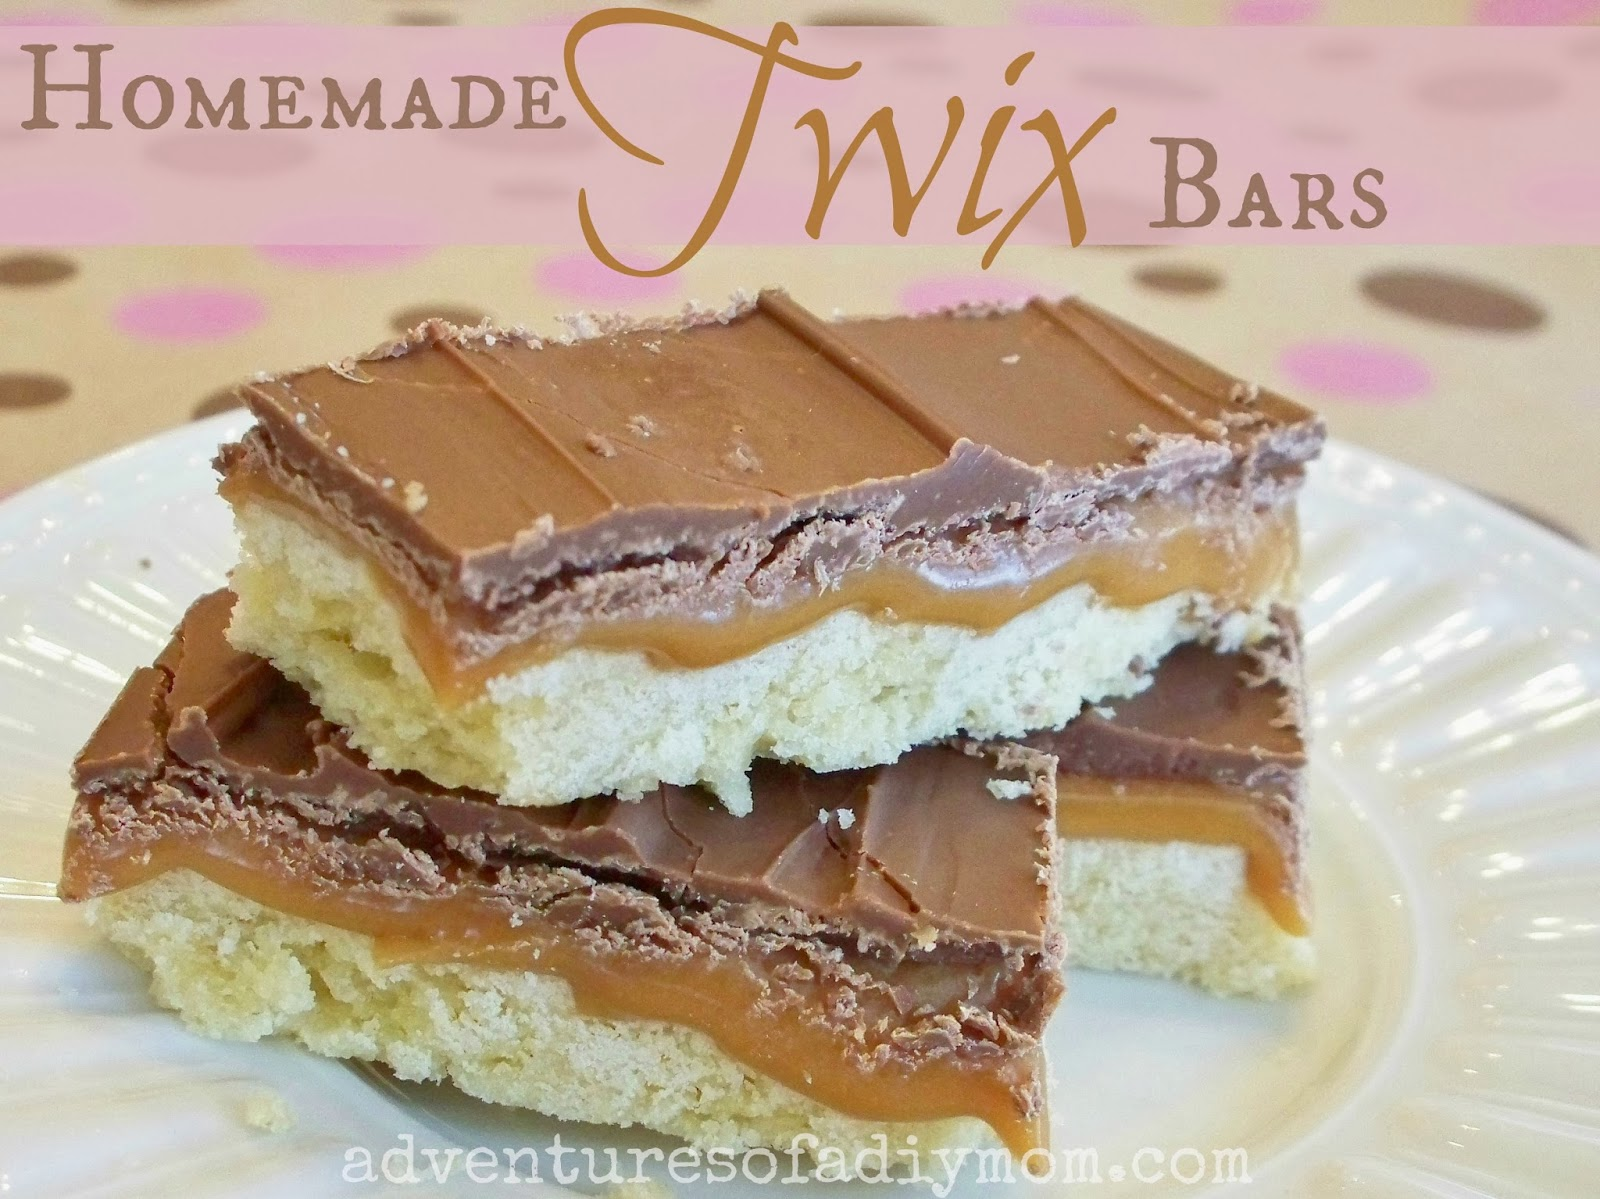 Adventures of a DIY Mom: Homemade Twix Bars Recipe